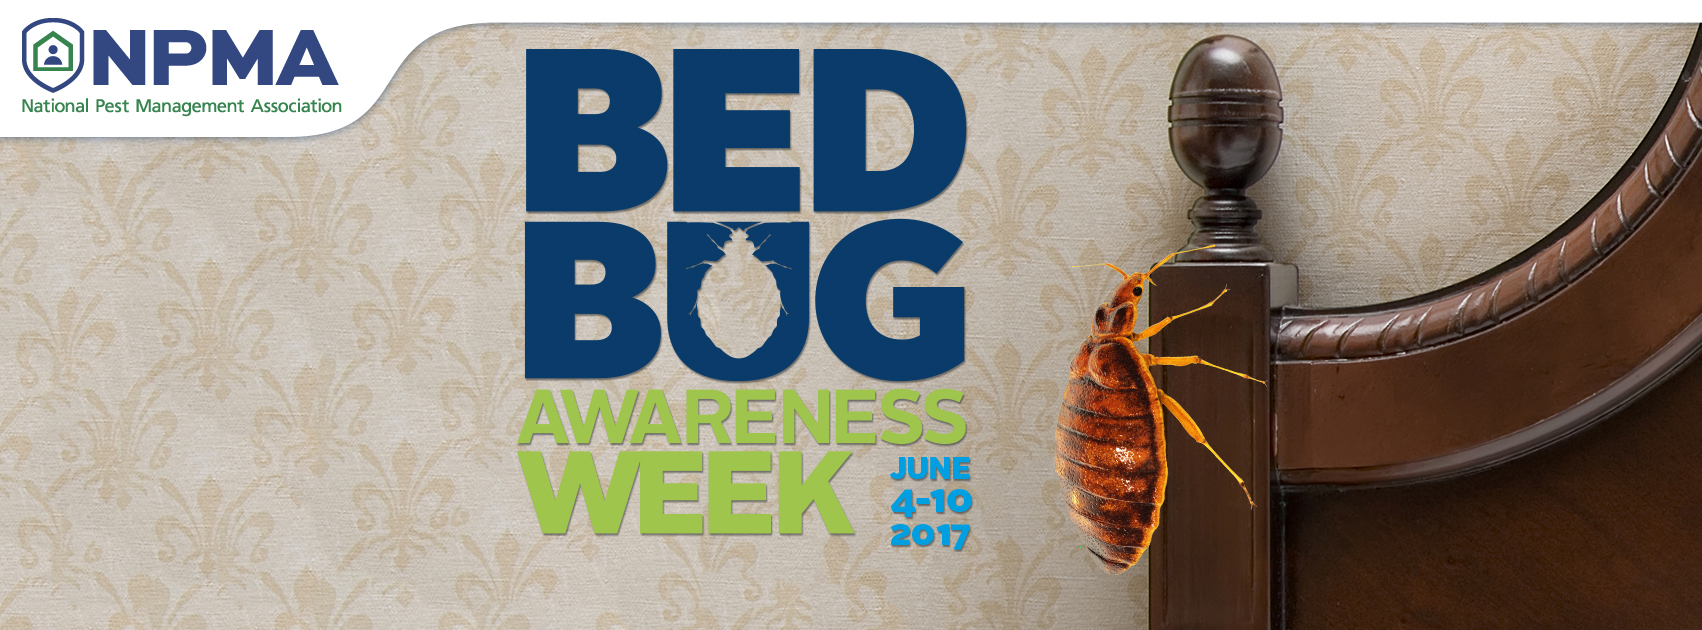 Bed Bug Awareness Week